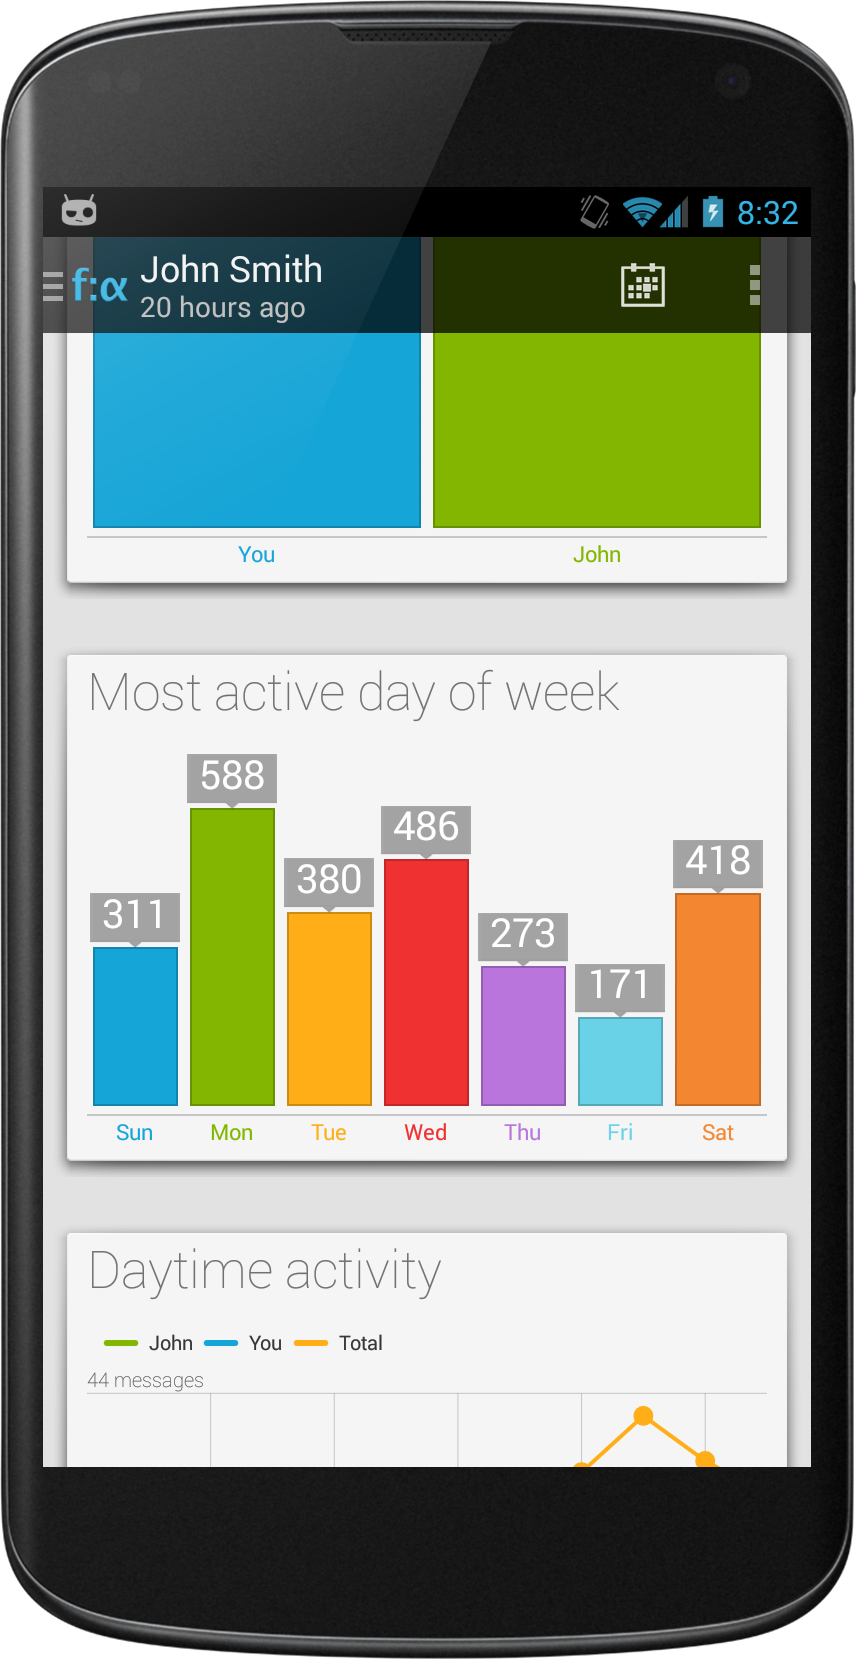 Most active days